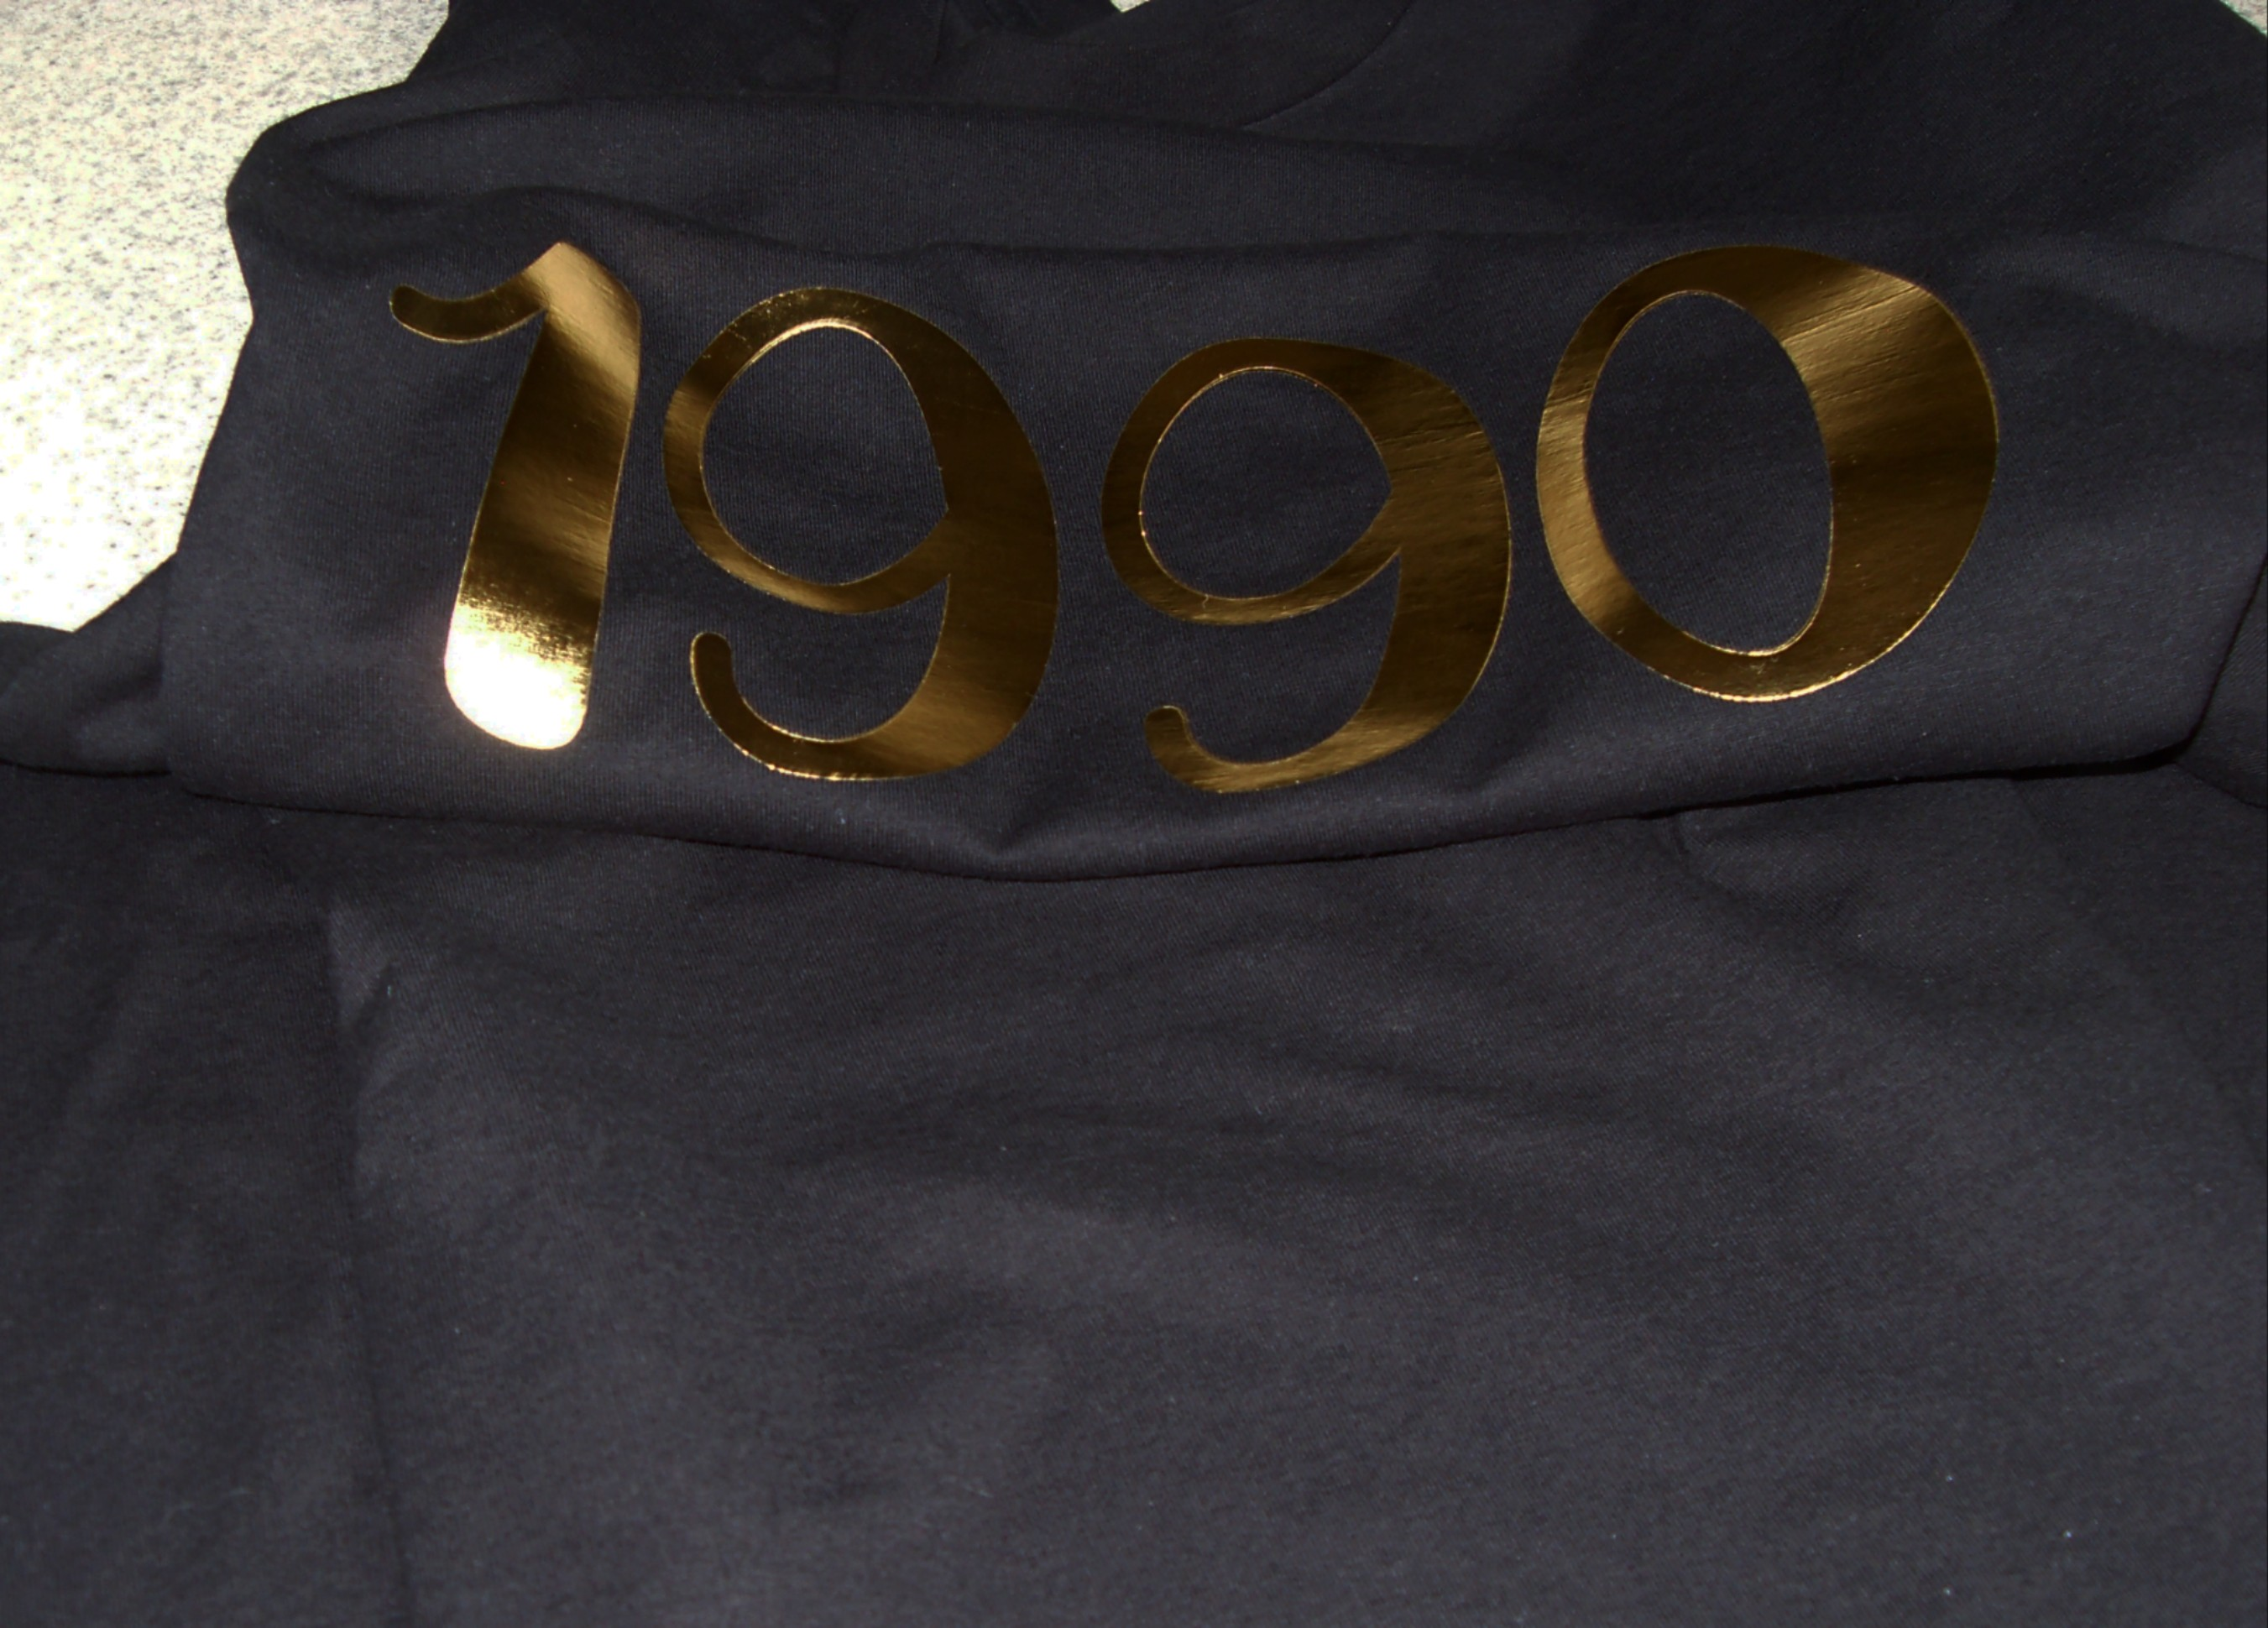 Metallic Gold 1990 Shirt